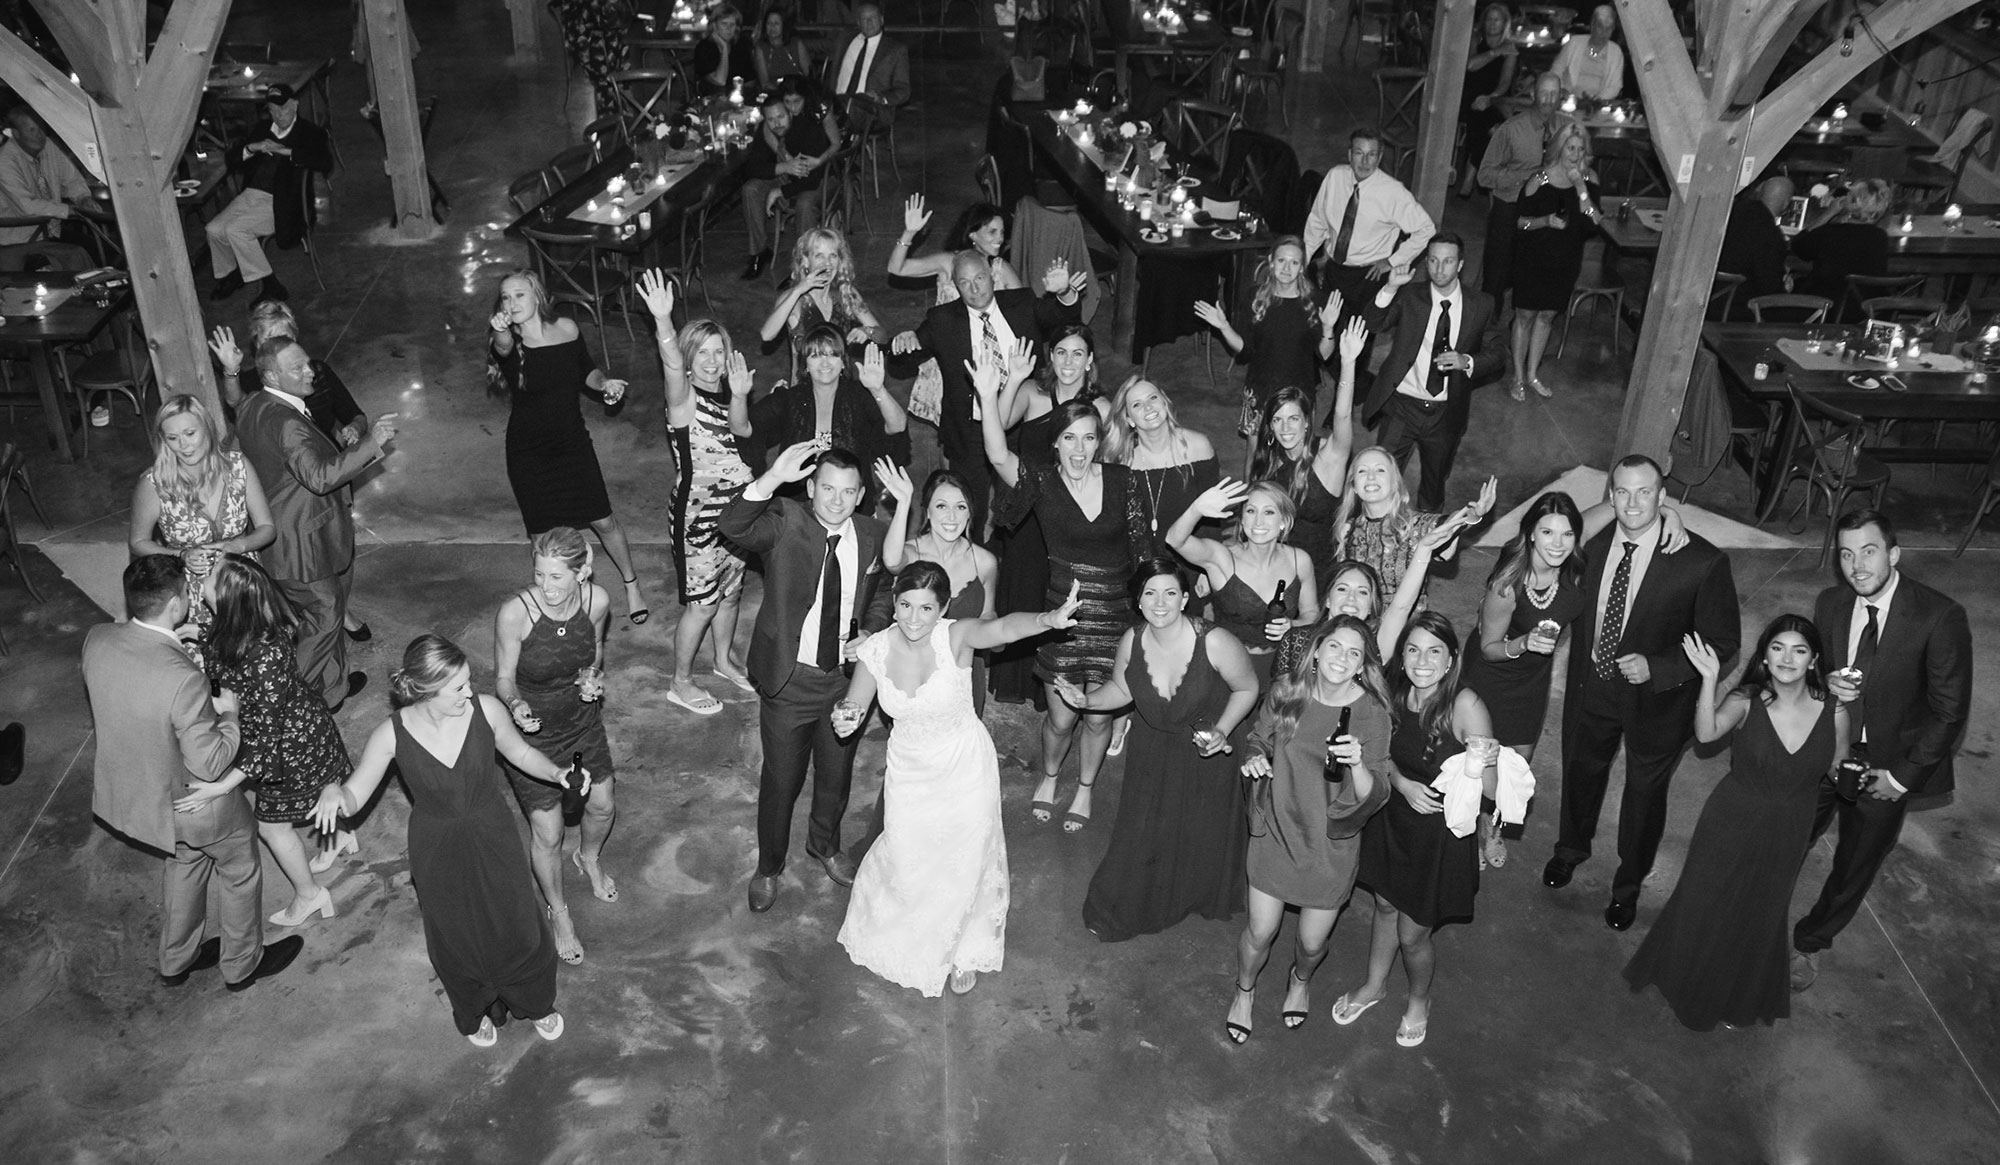 Ross_Kasie_Wedding_Dancing.jpg